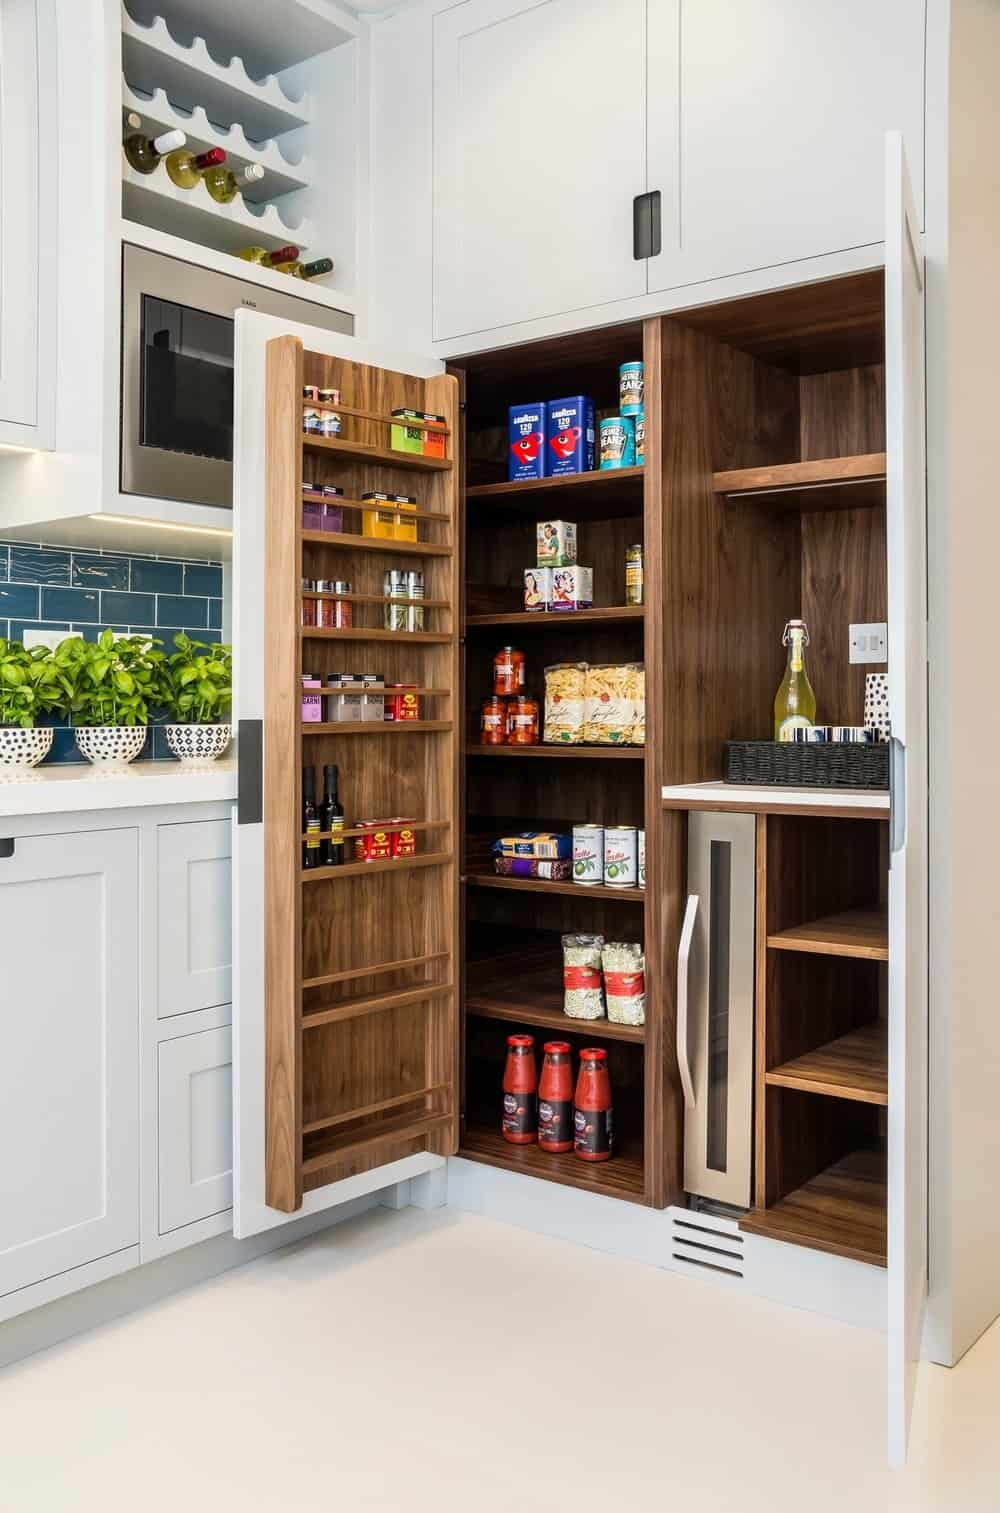 The kitchen offers a closed cabinet storage. Photo Credit: Rick Mccullagh